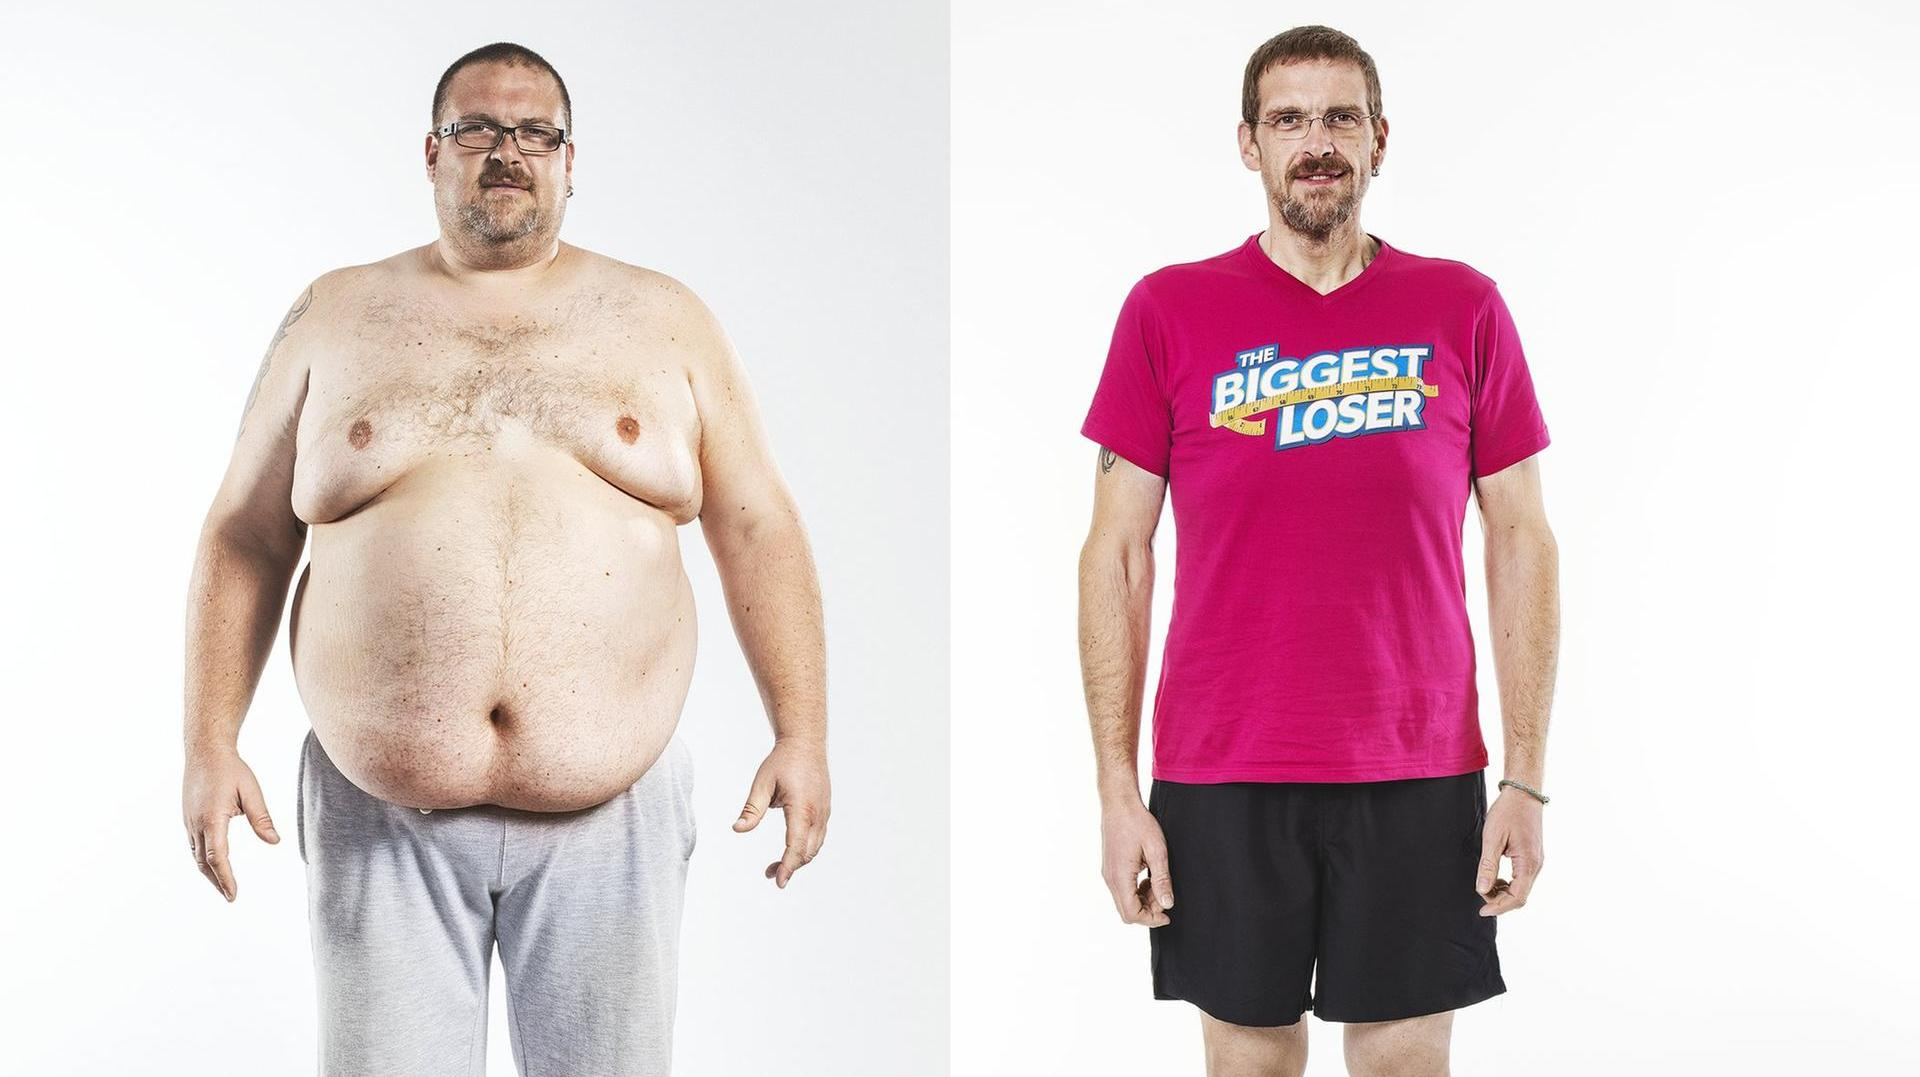 The biggest loser germany